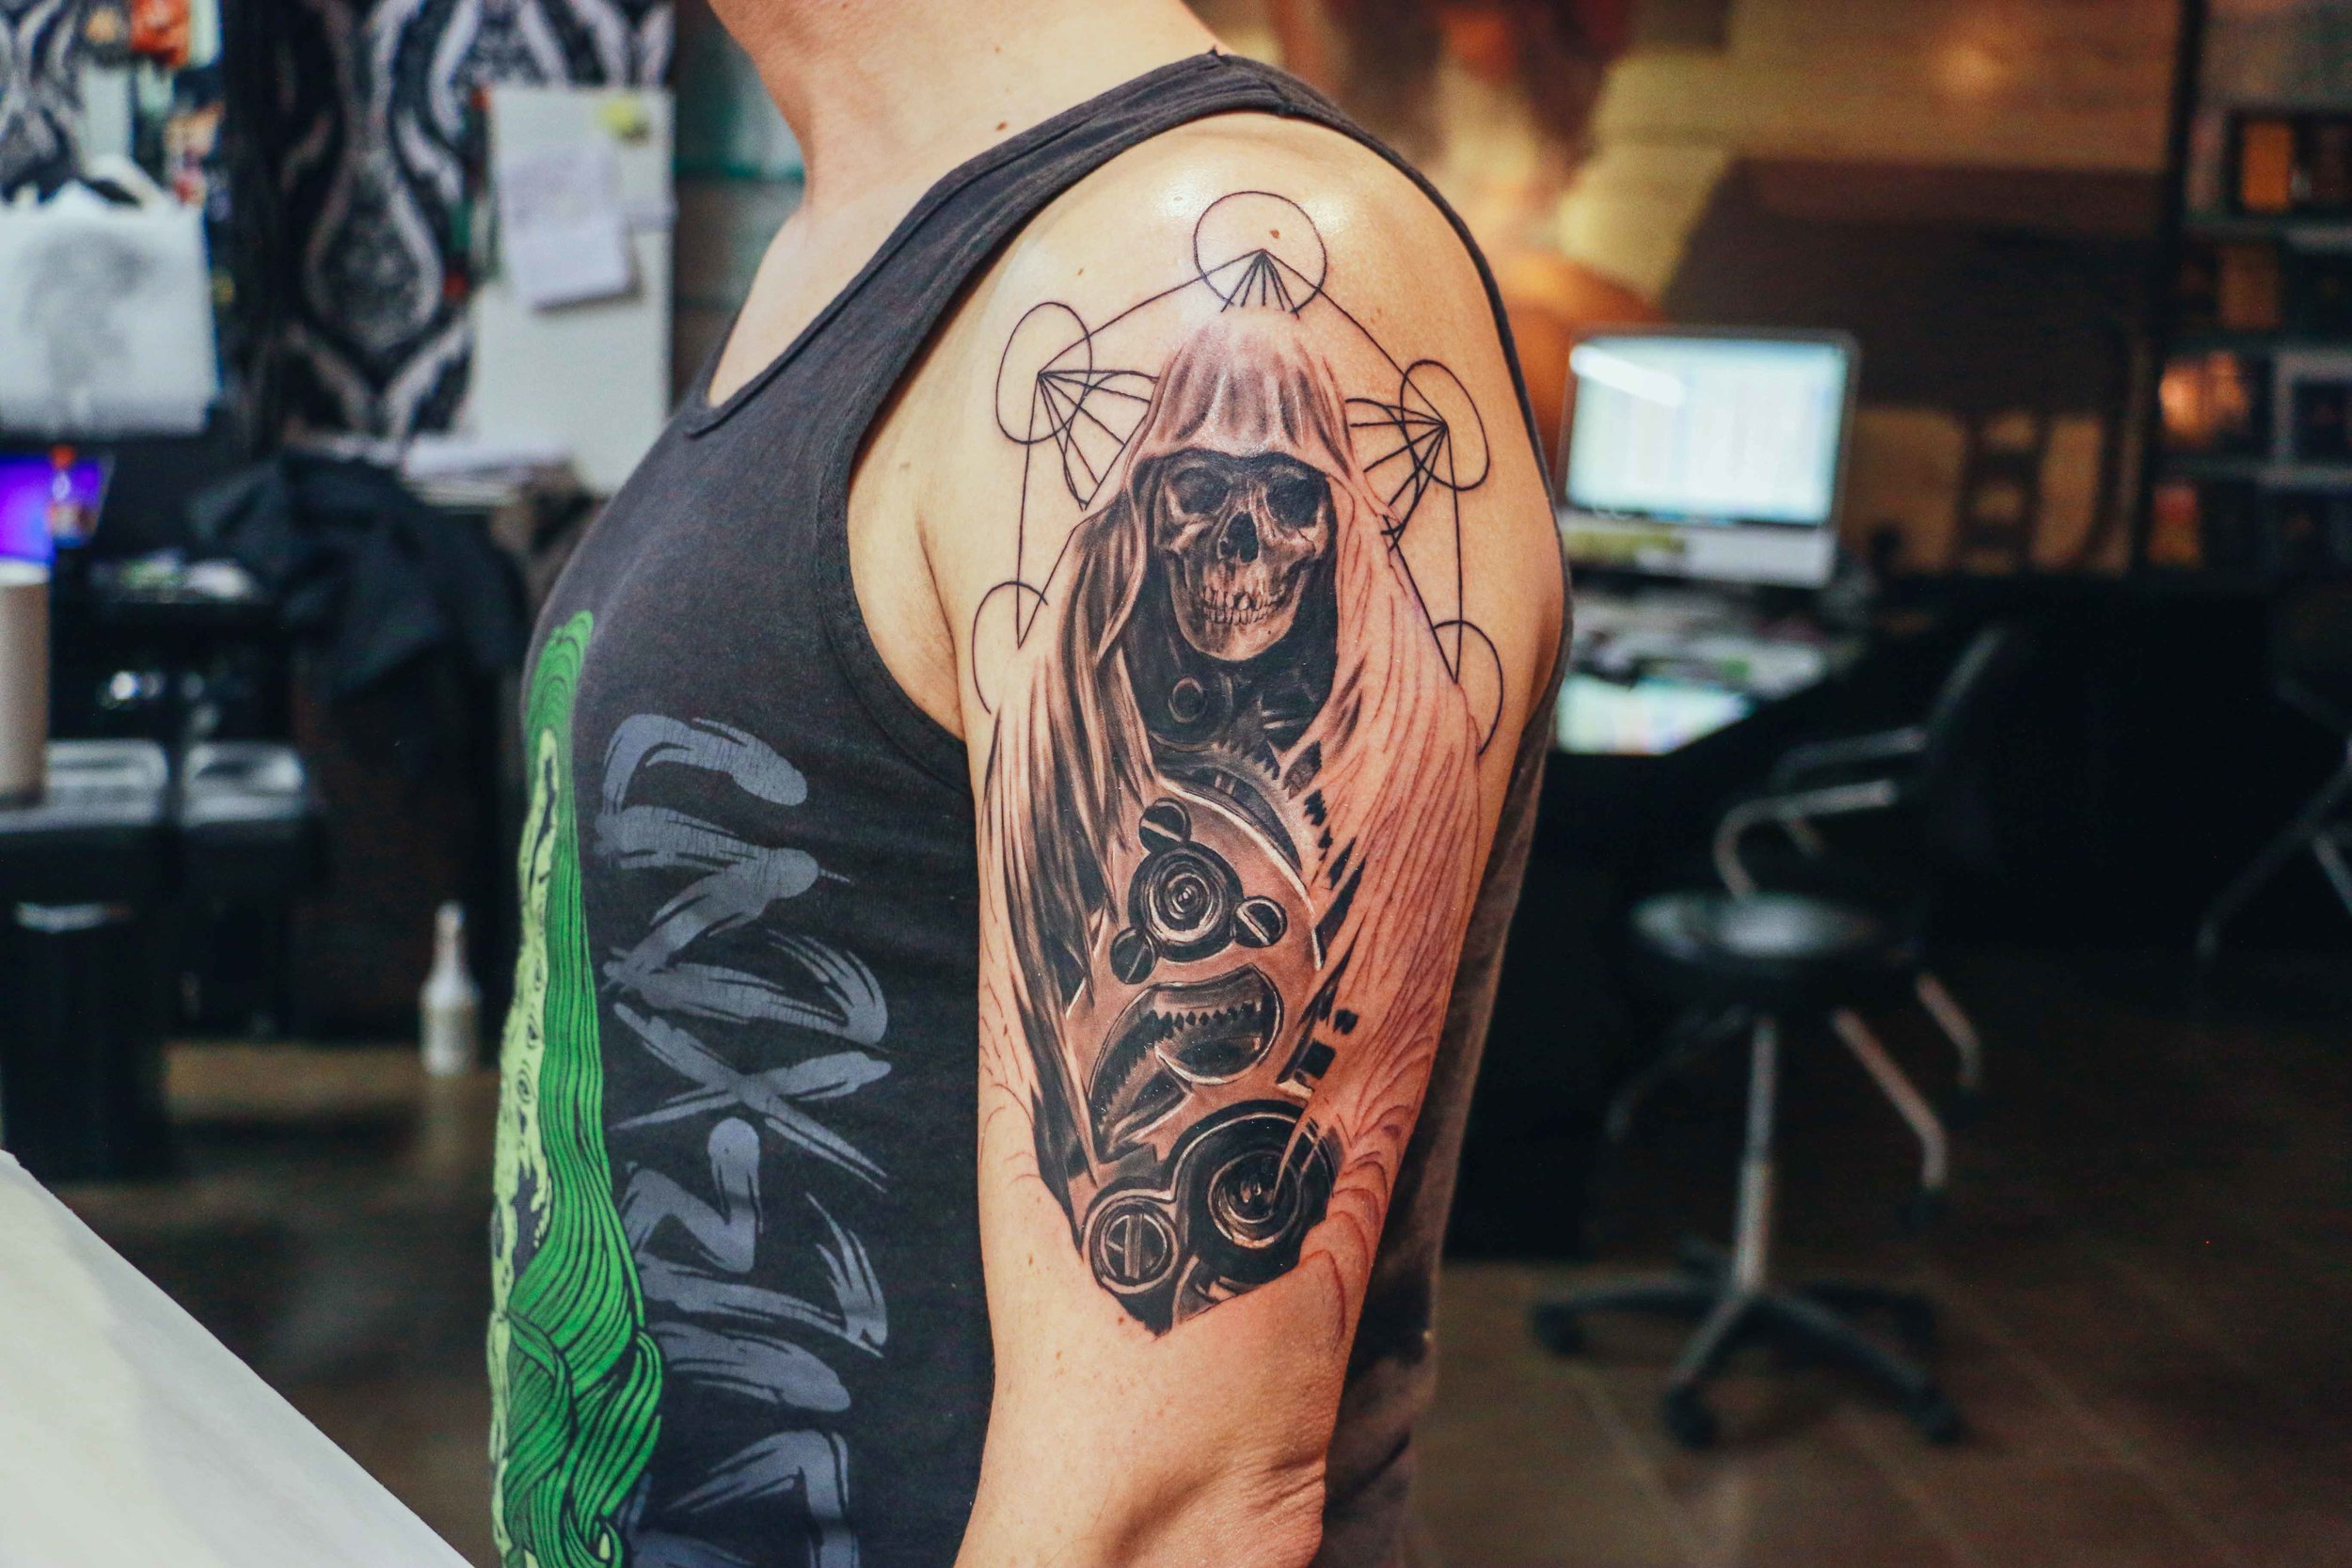 fyink-tattoos-aprshoplife-13.jpg